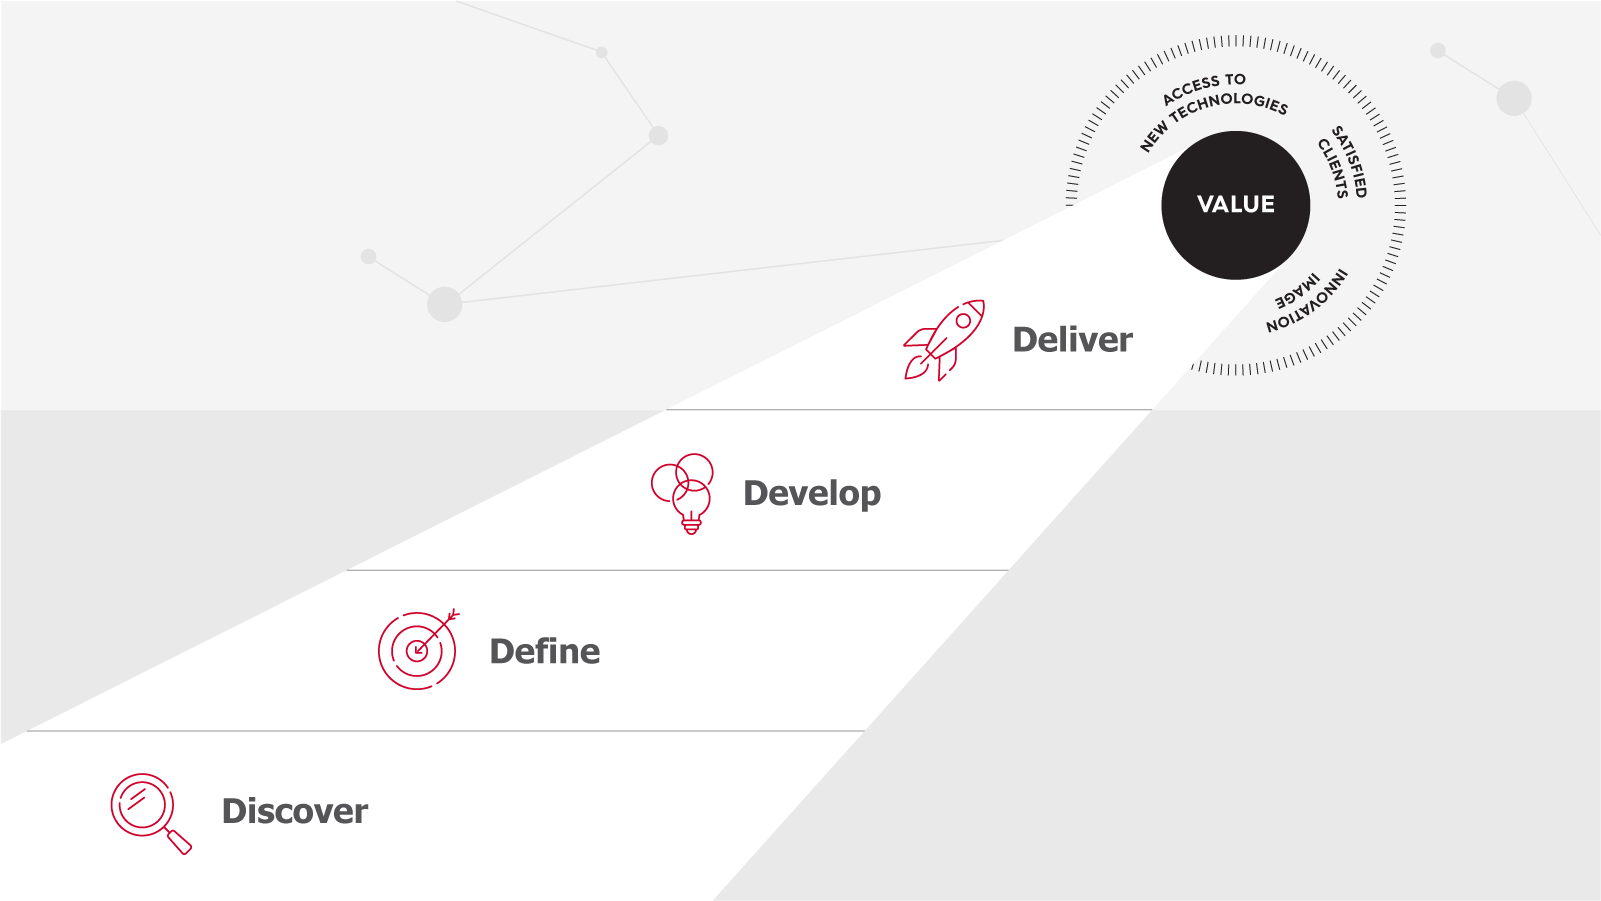 4Ds: Discover, Define, Develop, Deliver